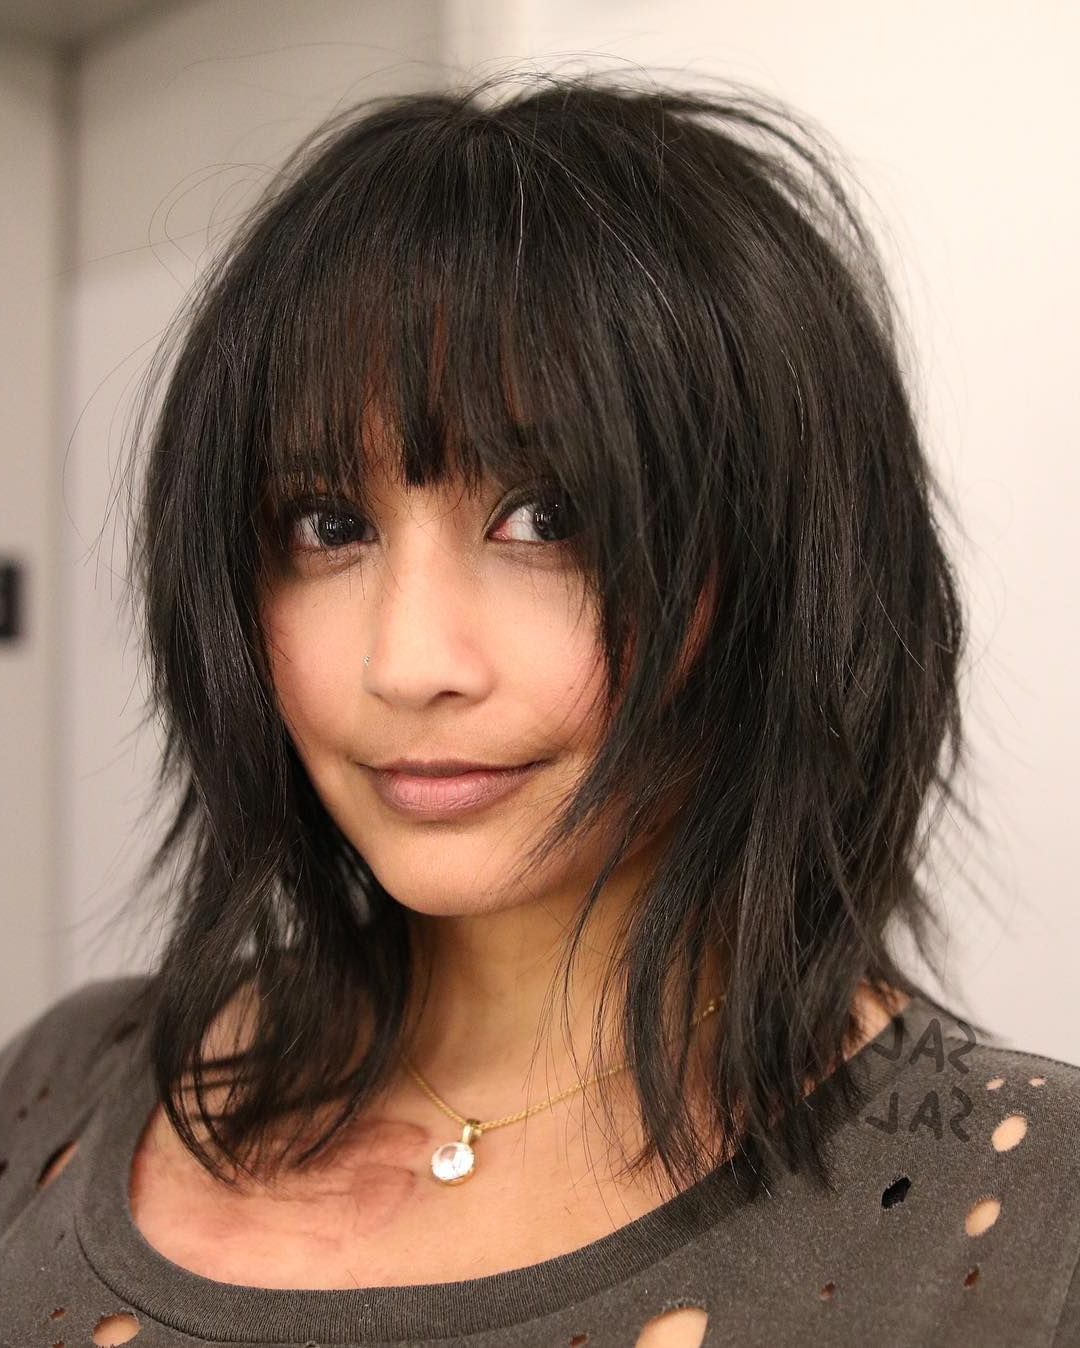 This Dark Voluminous Face Framing Shag Cut With Fringe Bangs Is A Inside Current Voluminous Wavy Layered Hairstyles With Bangs (View 4 of 20)